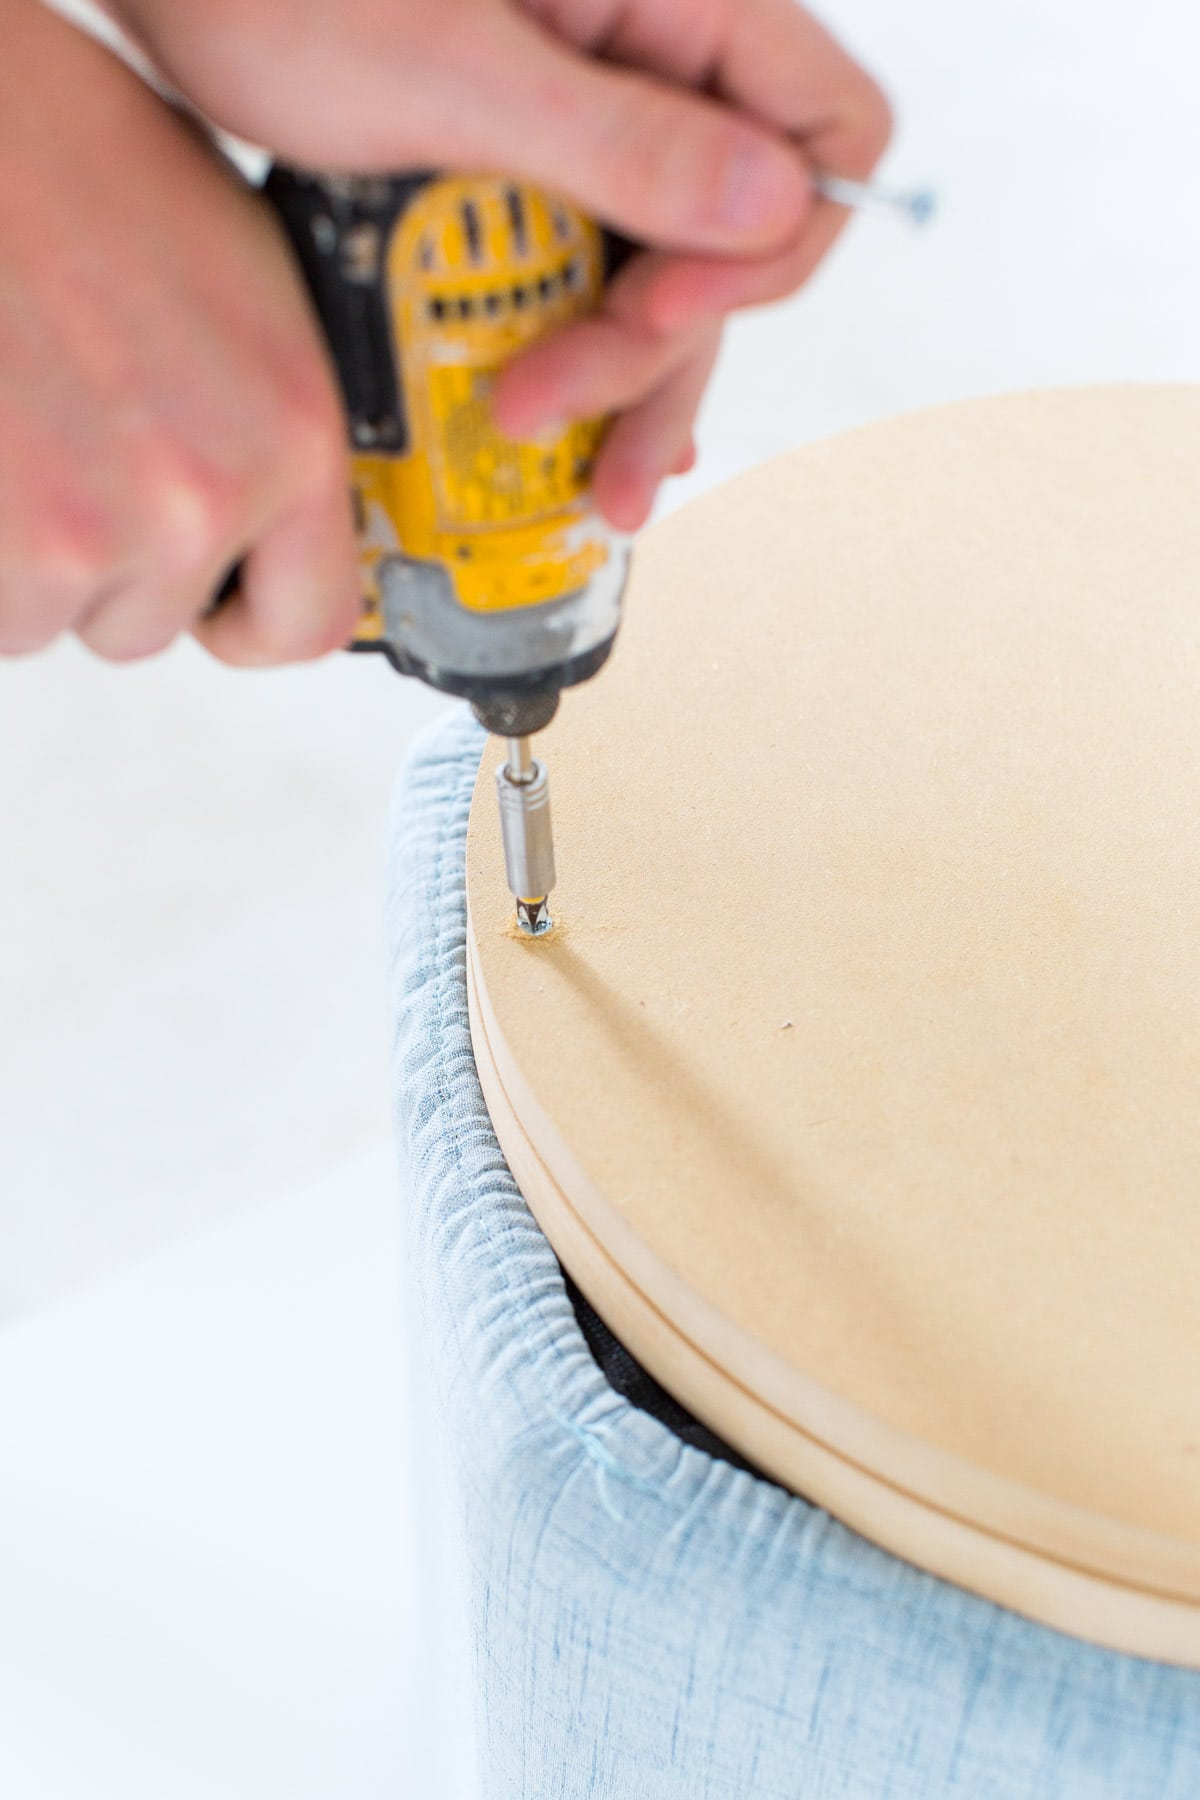 DIY Metallic Gold Stool Bases by top Houston lifestyle blogger Ashley Rose of Sugar and Cloth